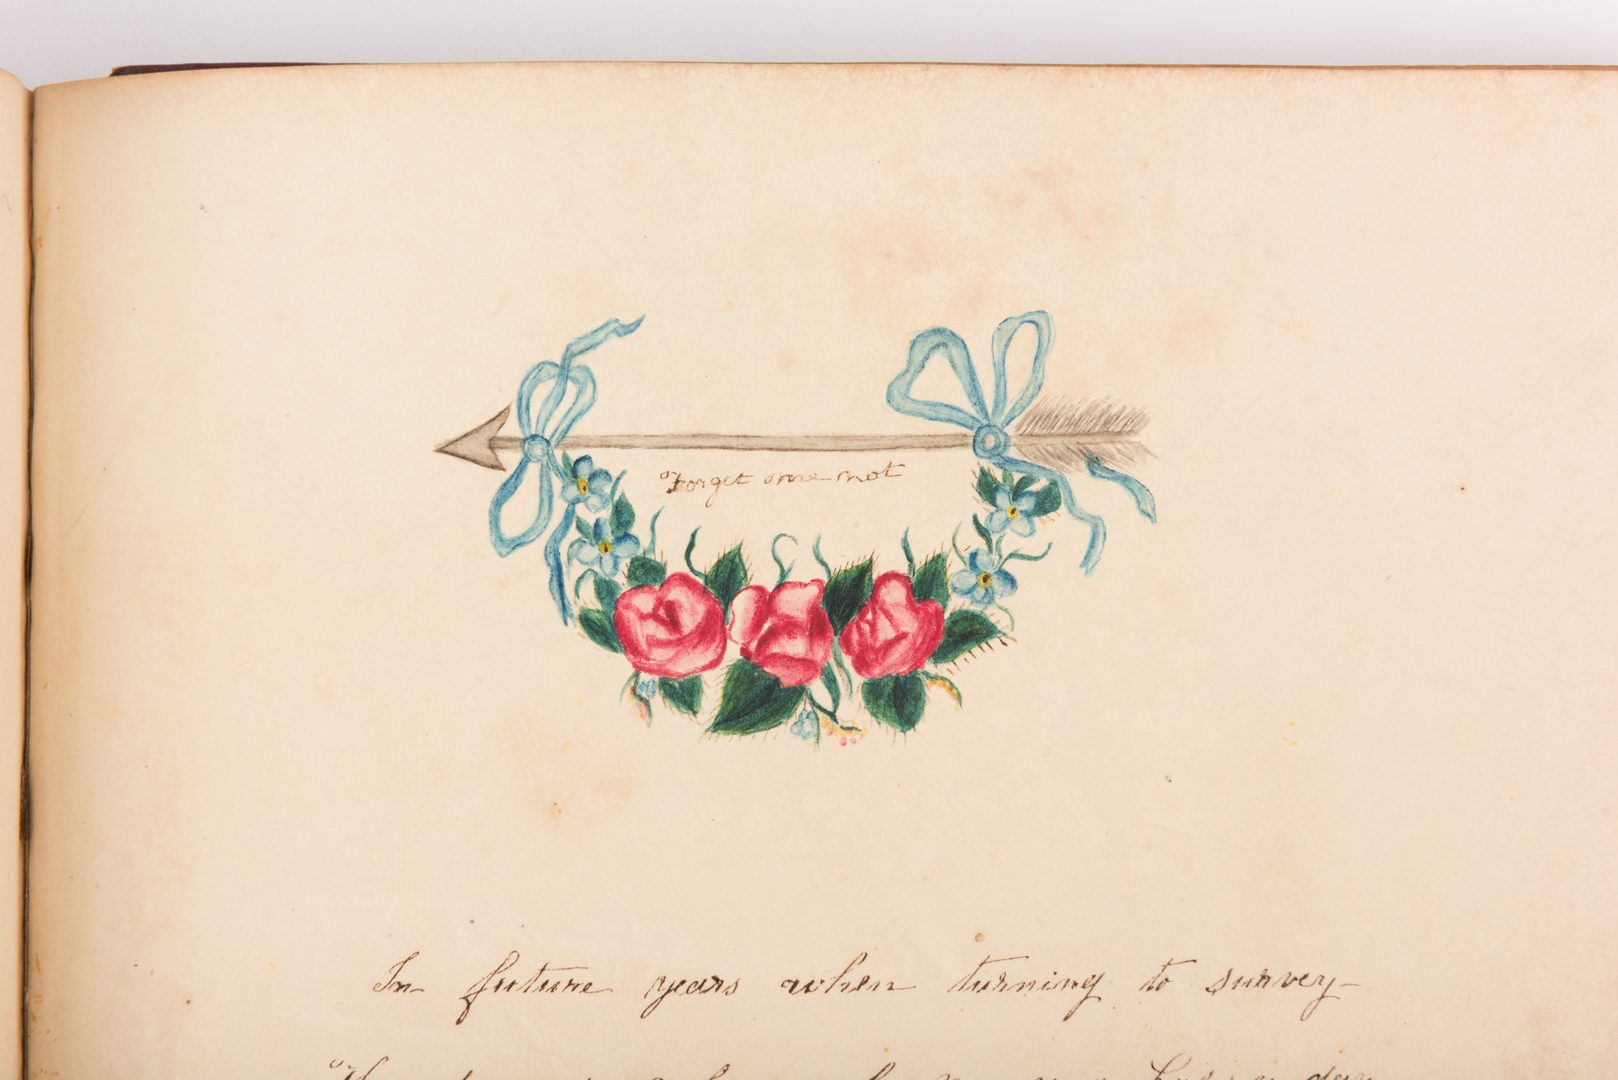 Lot 492: Craige Family, N.C, Watercolor Illustration Album & Notebook, 2 items